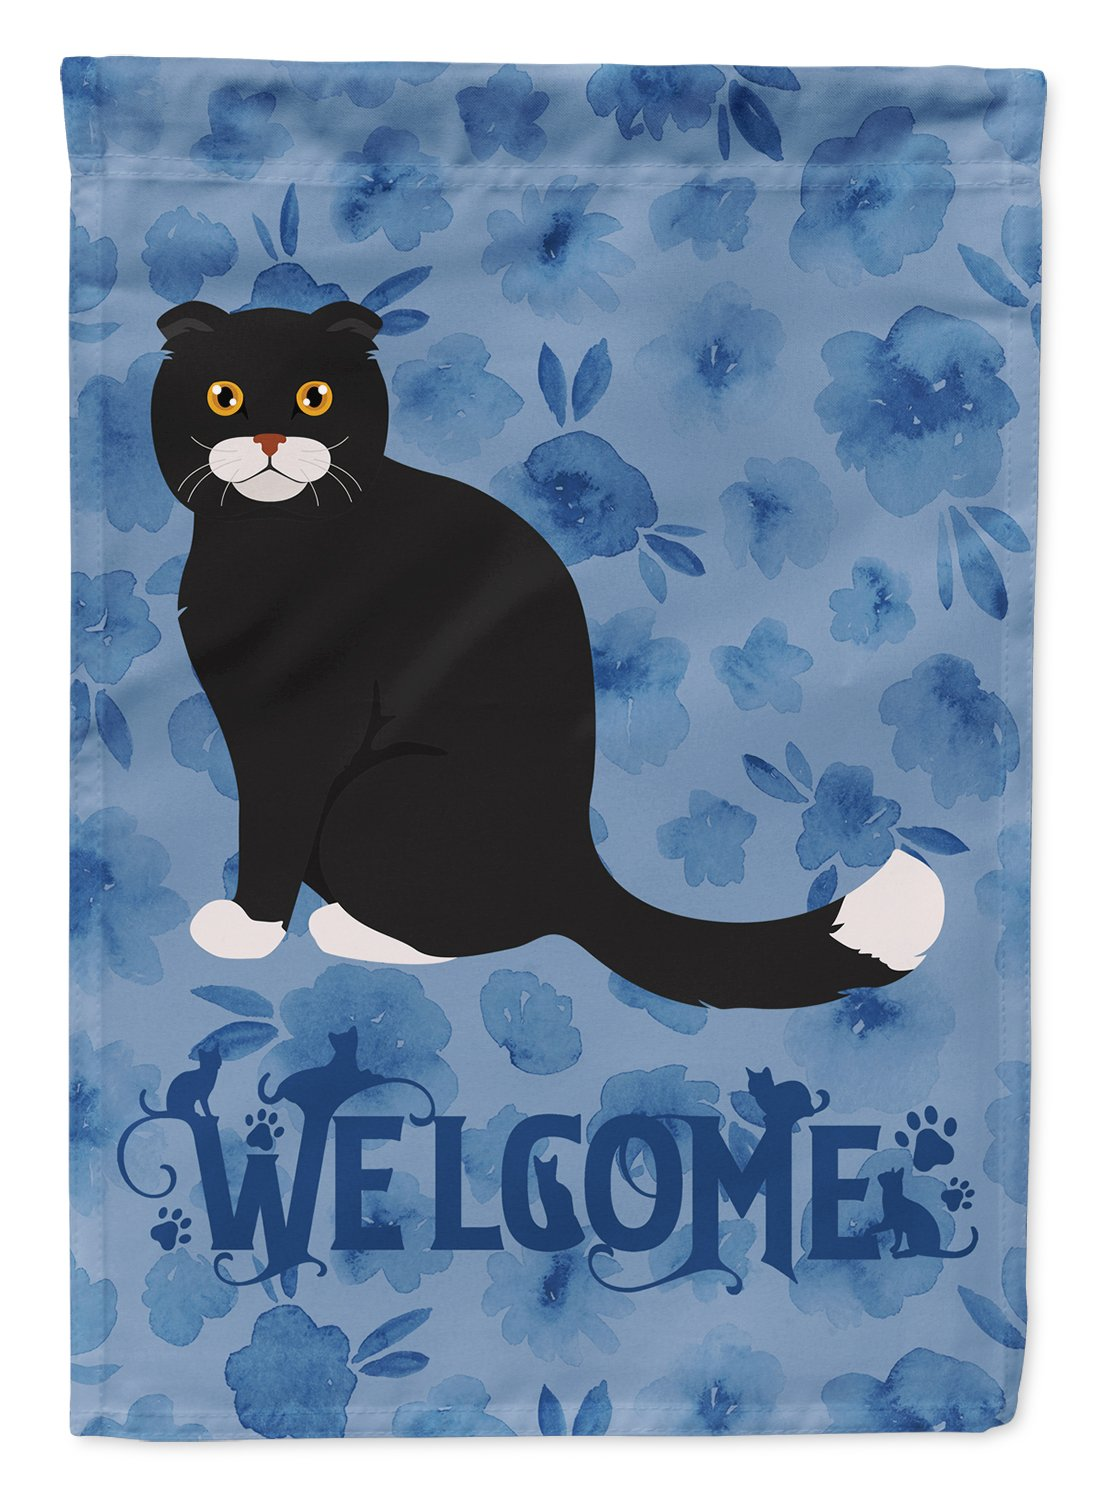 Foldex Exotic Fold #2 Cat Welcome Flag Garden Size CK5035GF by Caroline's Treasures